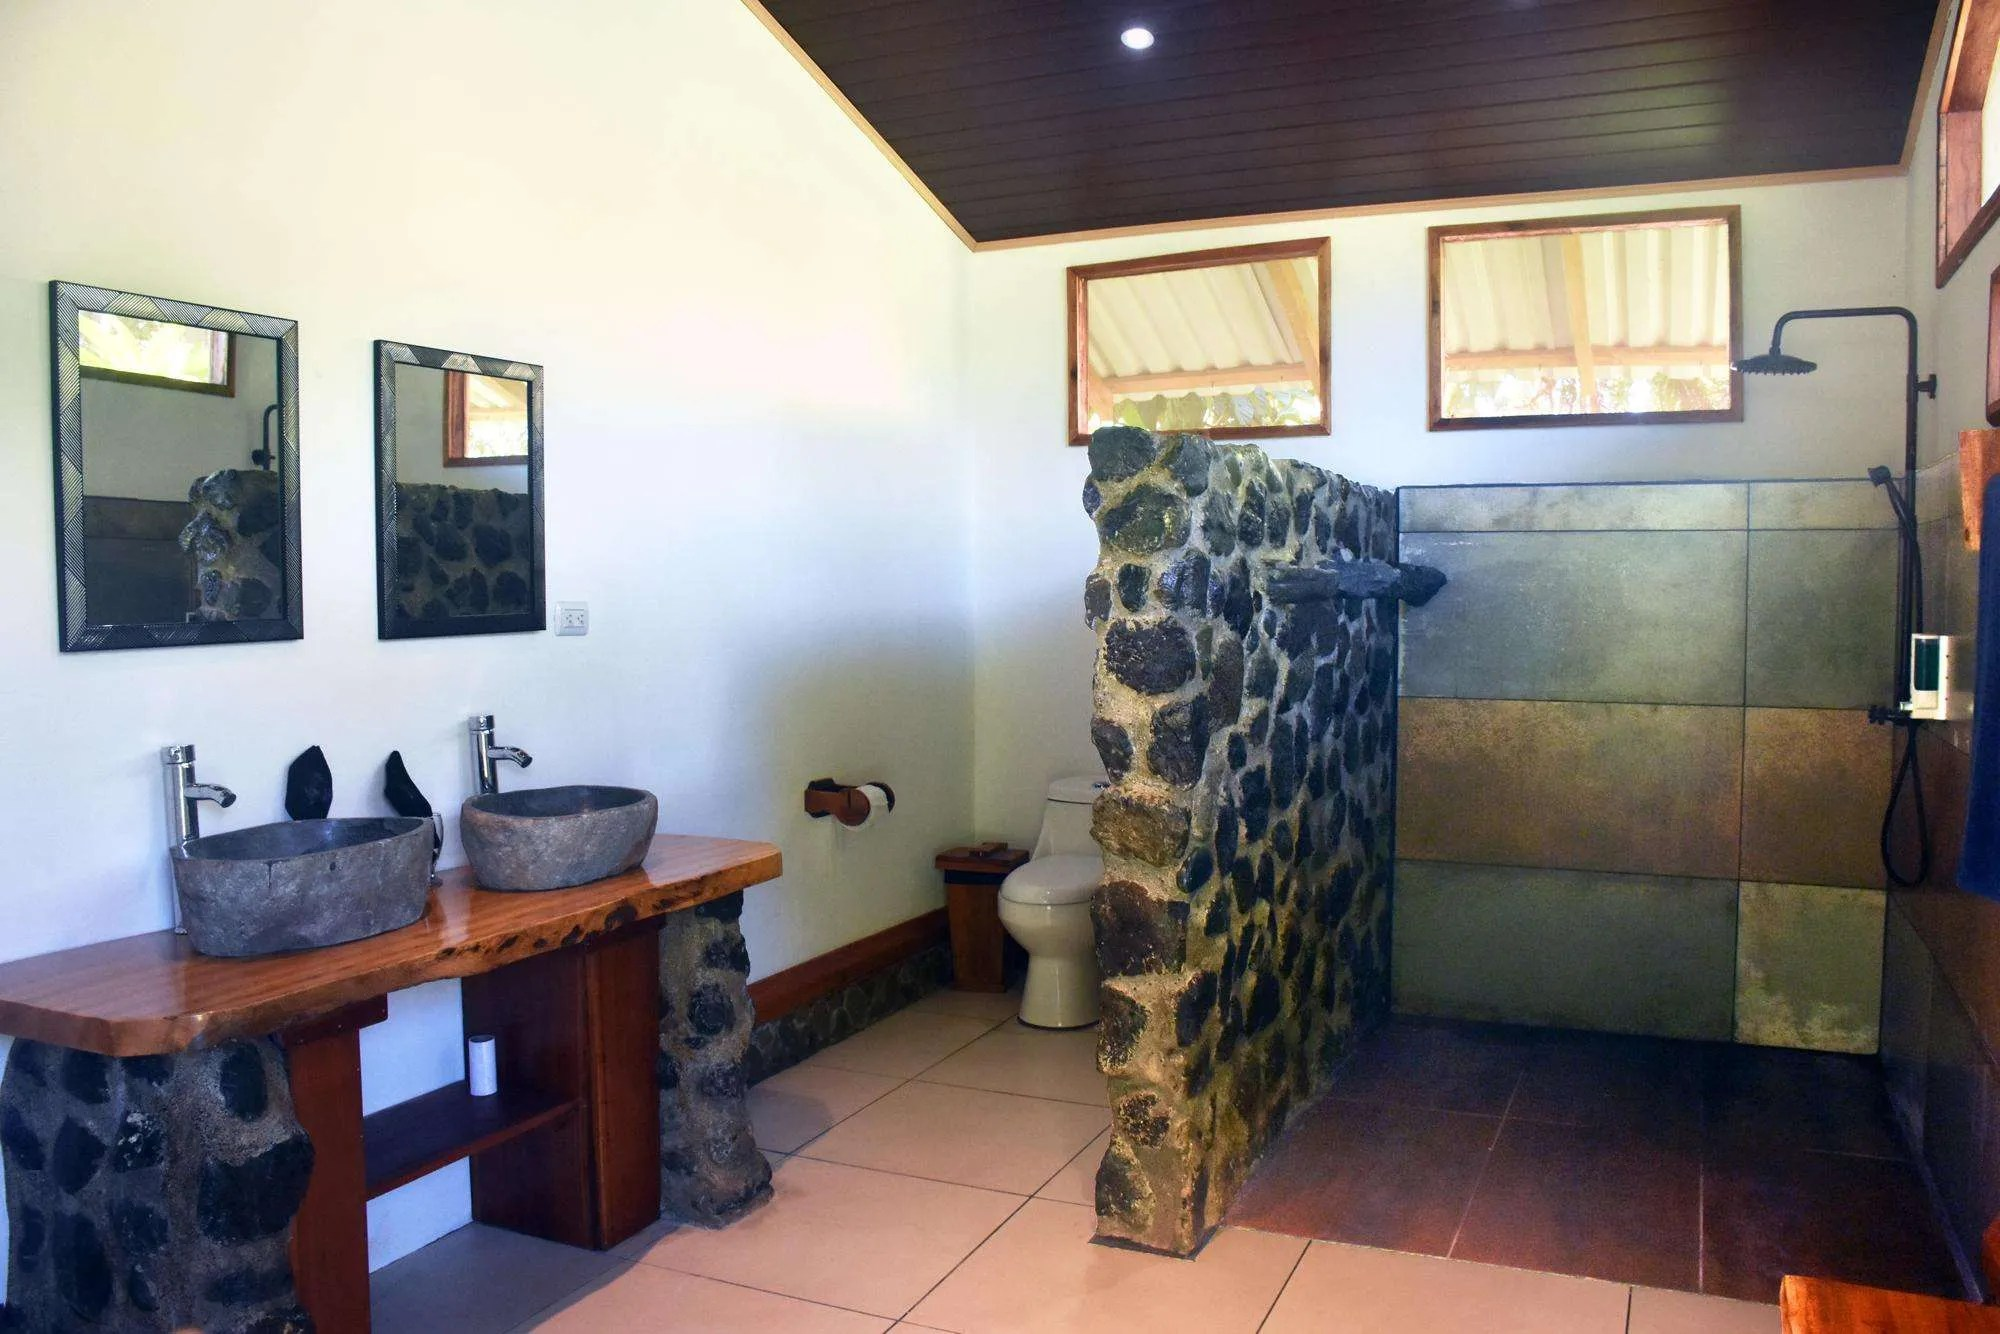 Hostel in Corcovado Jaguar Jungle bathroom full view